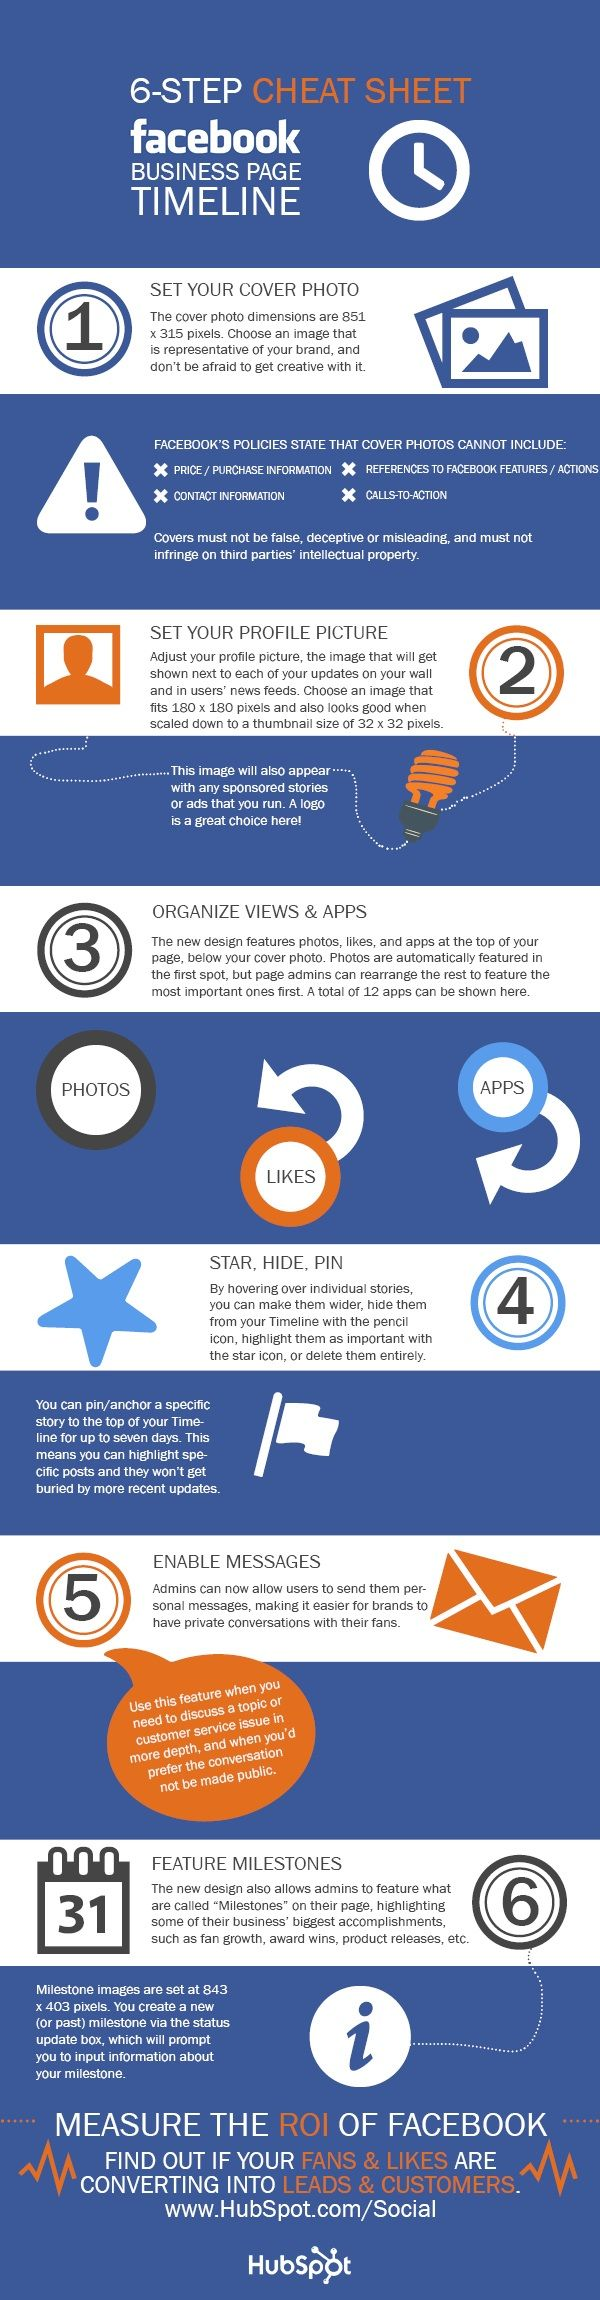 Your 6-step cheat sheet to optimize your Facebook business page for the new timeline design